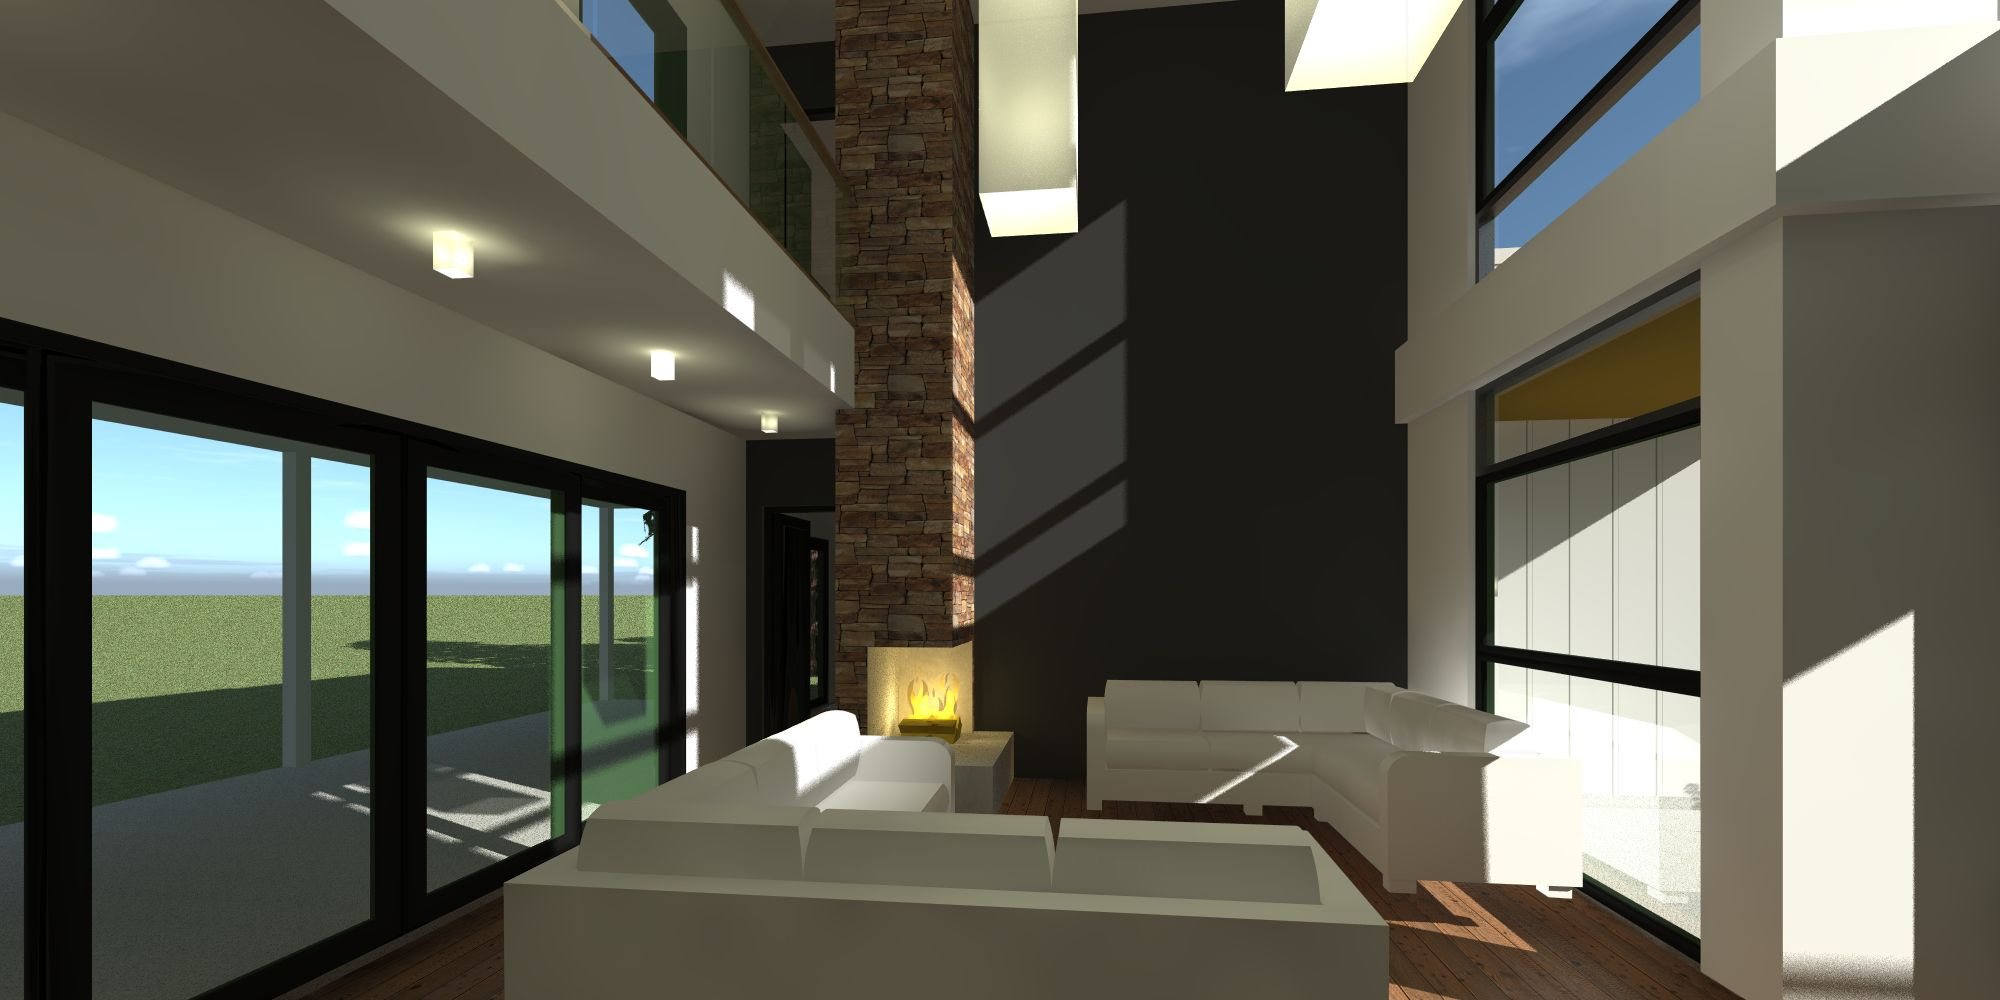 4 Bedroom Modern Home with Private Office House plans